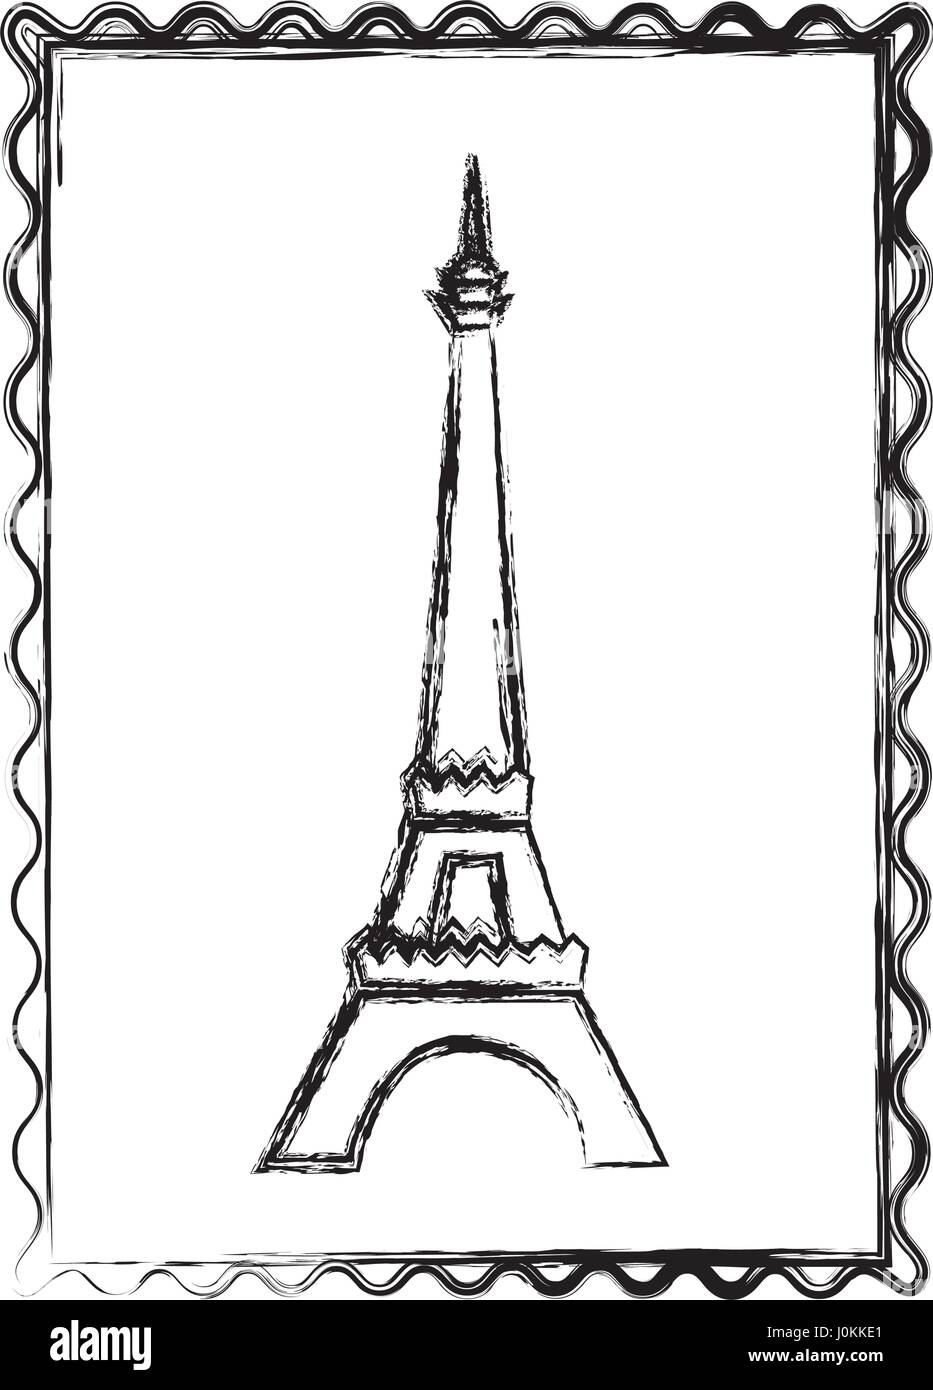 blurred silhouette frame with eiffel tower - Stock Vector